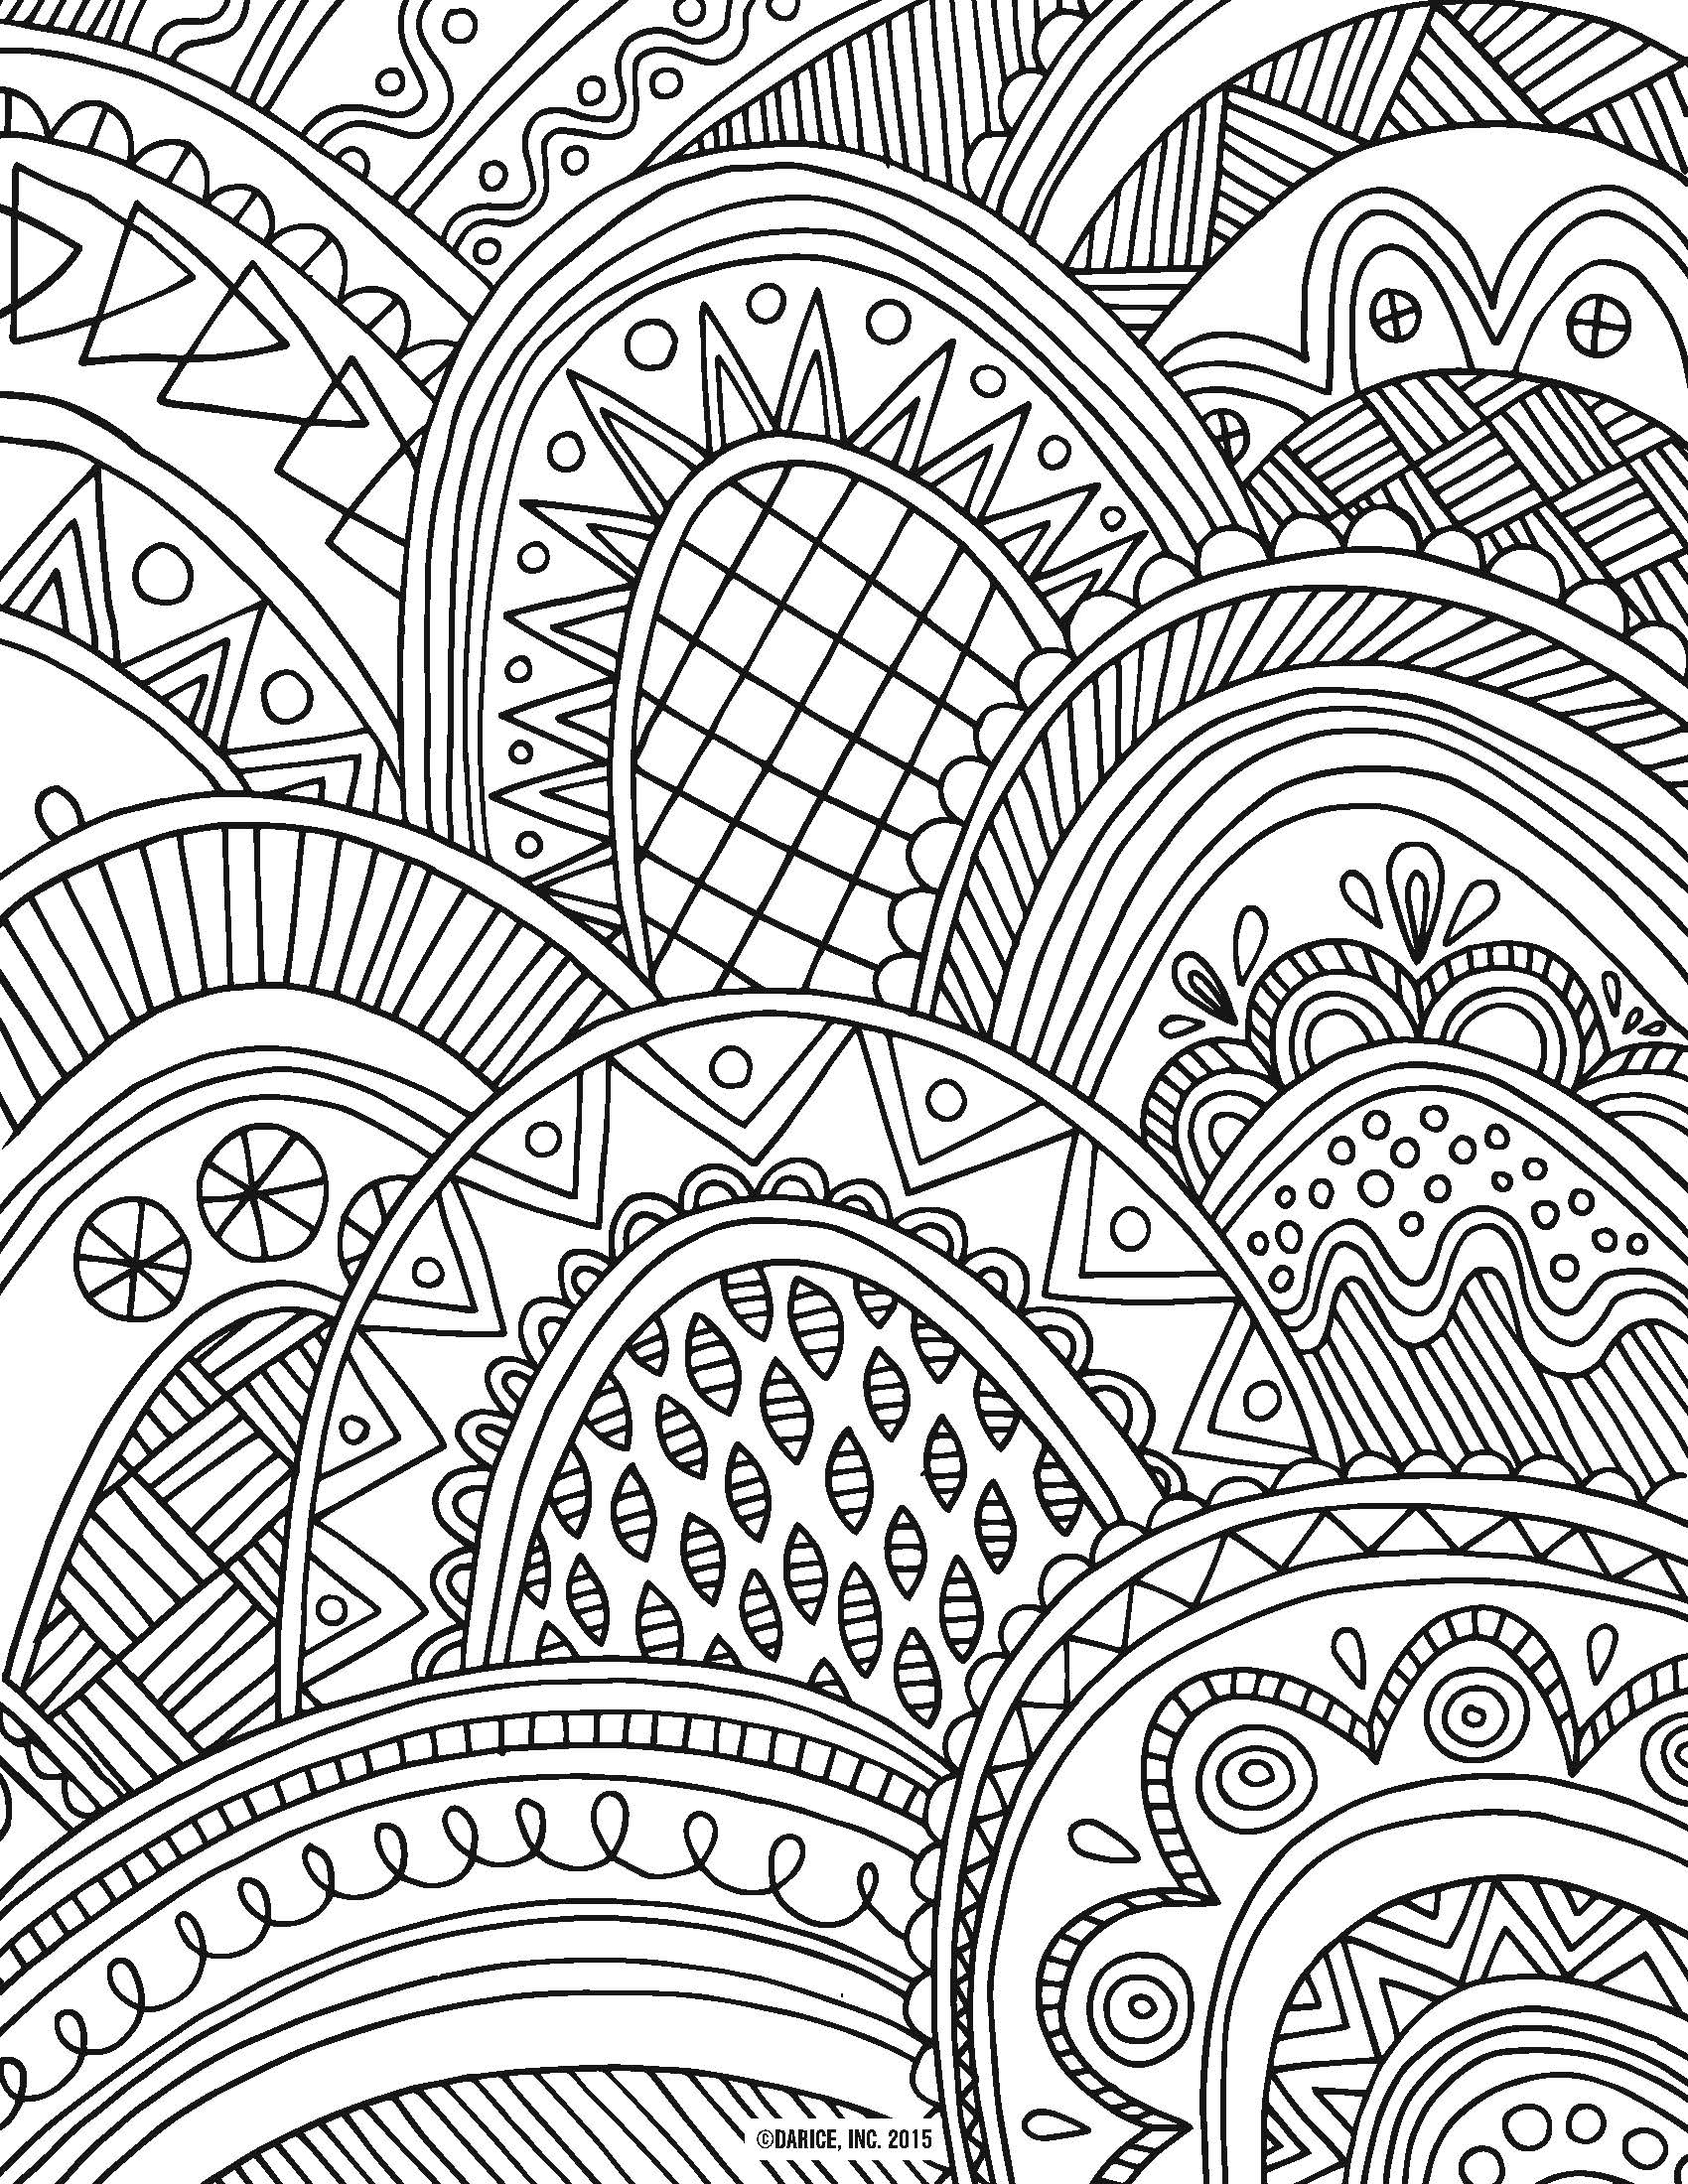 coloring pages for adults patterns free printable geometric coloring pages for adults for patterns coloring pages adults